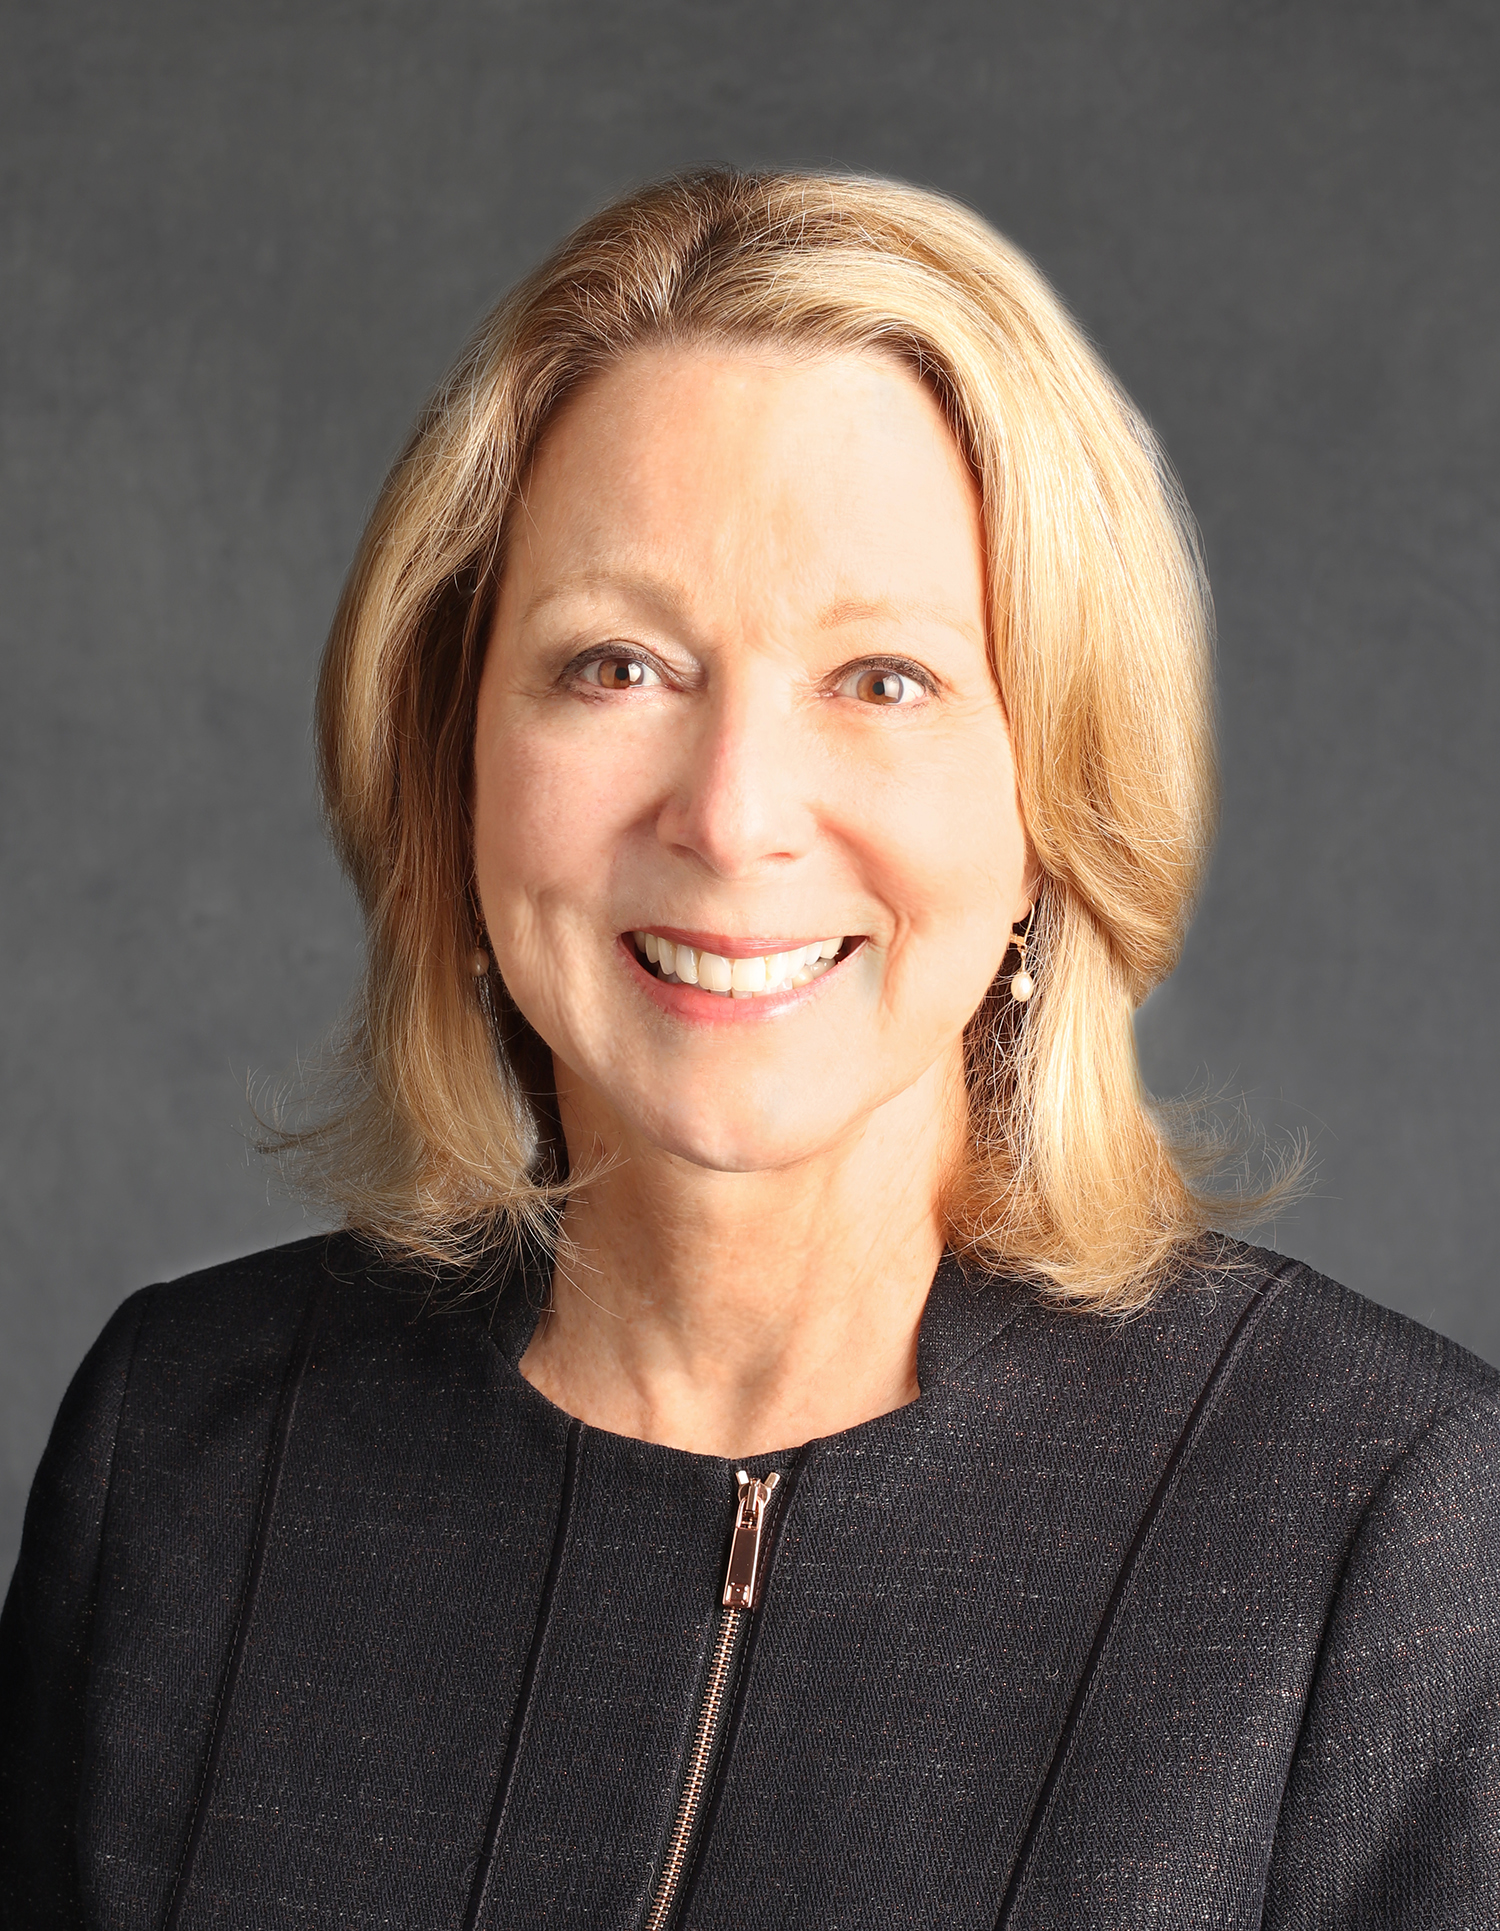 09182022__Susan Murray Headshot from Abe